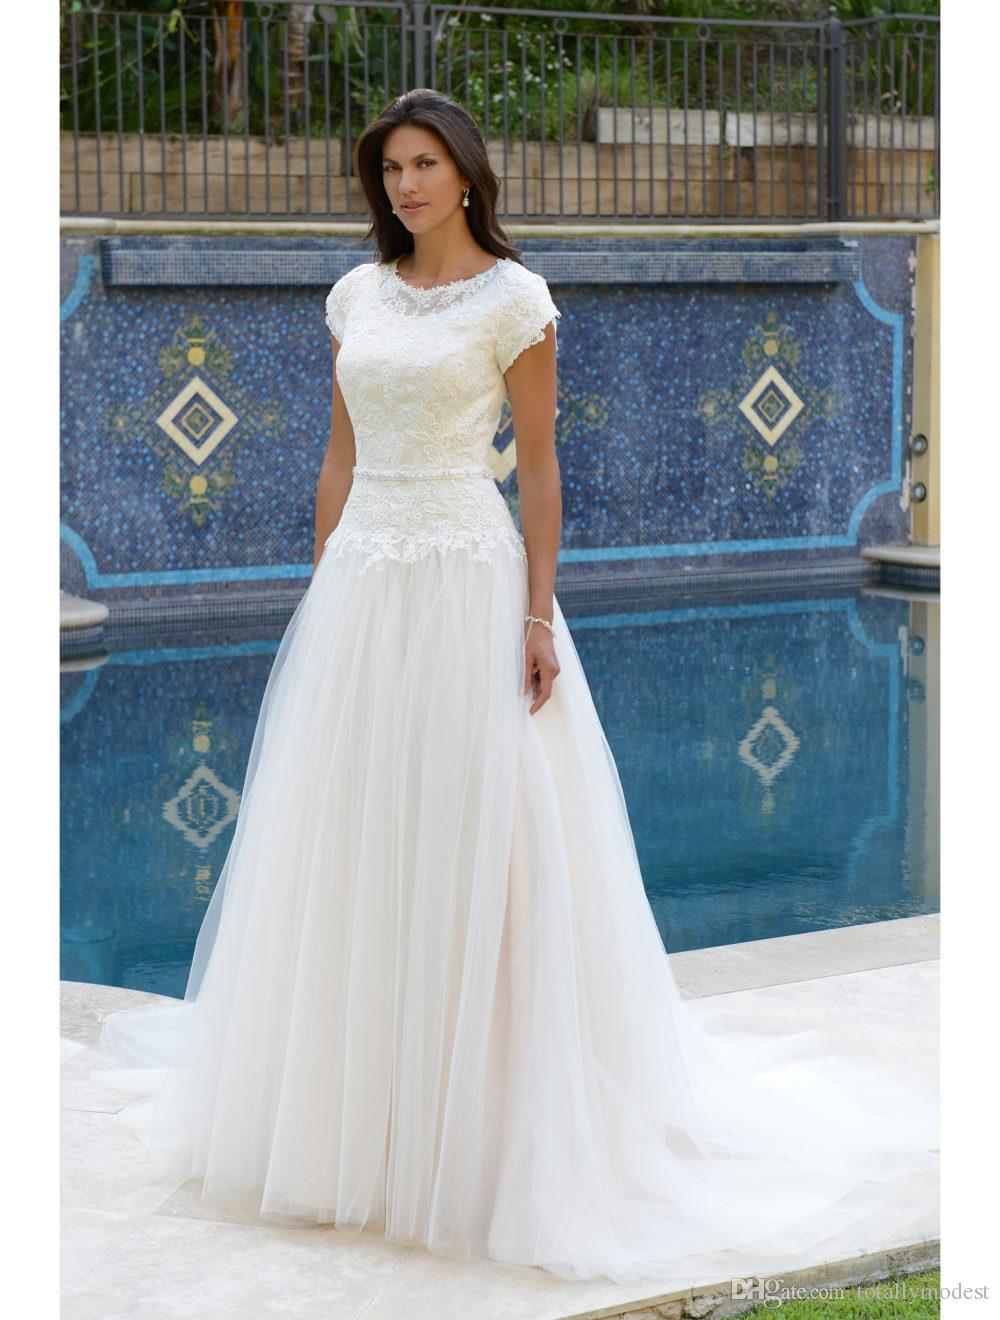 c8779c3d7cb Discount 2018 New Lace Bodice Modest Wedding Dresses With Tulip Sleeves  Jewel O Neck Buttons Over Zipper Back LDS Bridal Gown With Beaded Waist  Band Halter ...